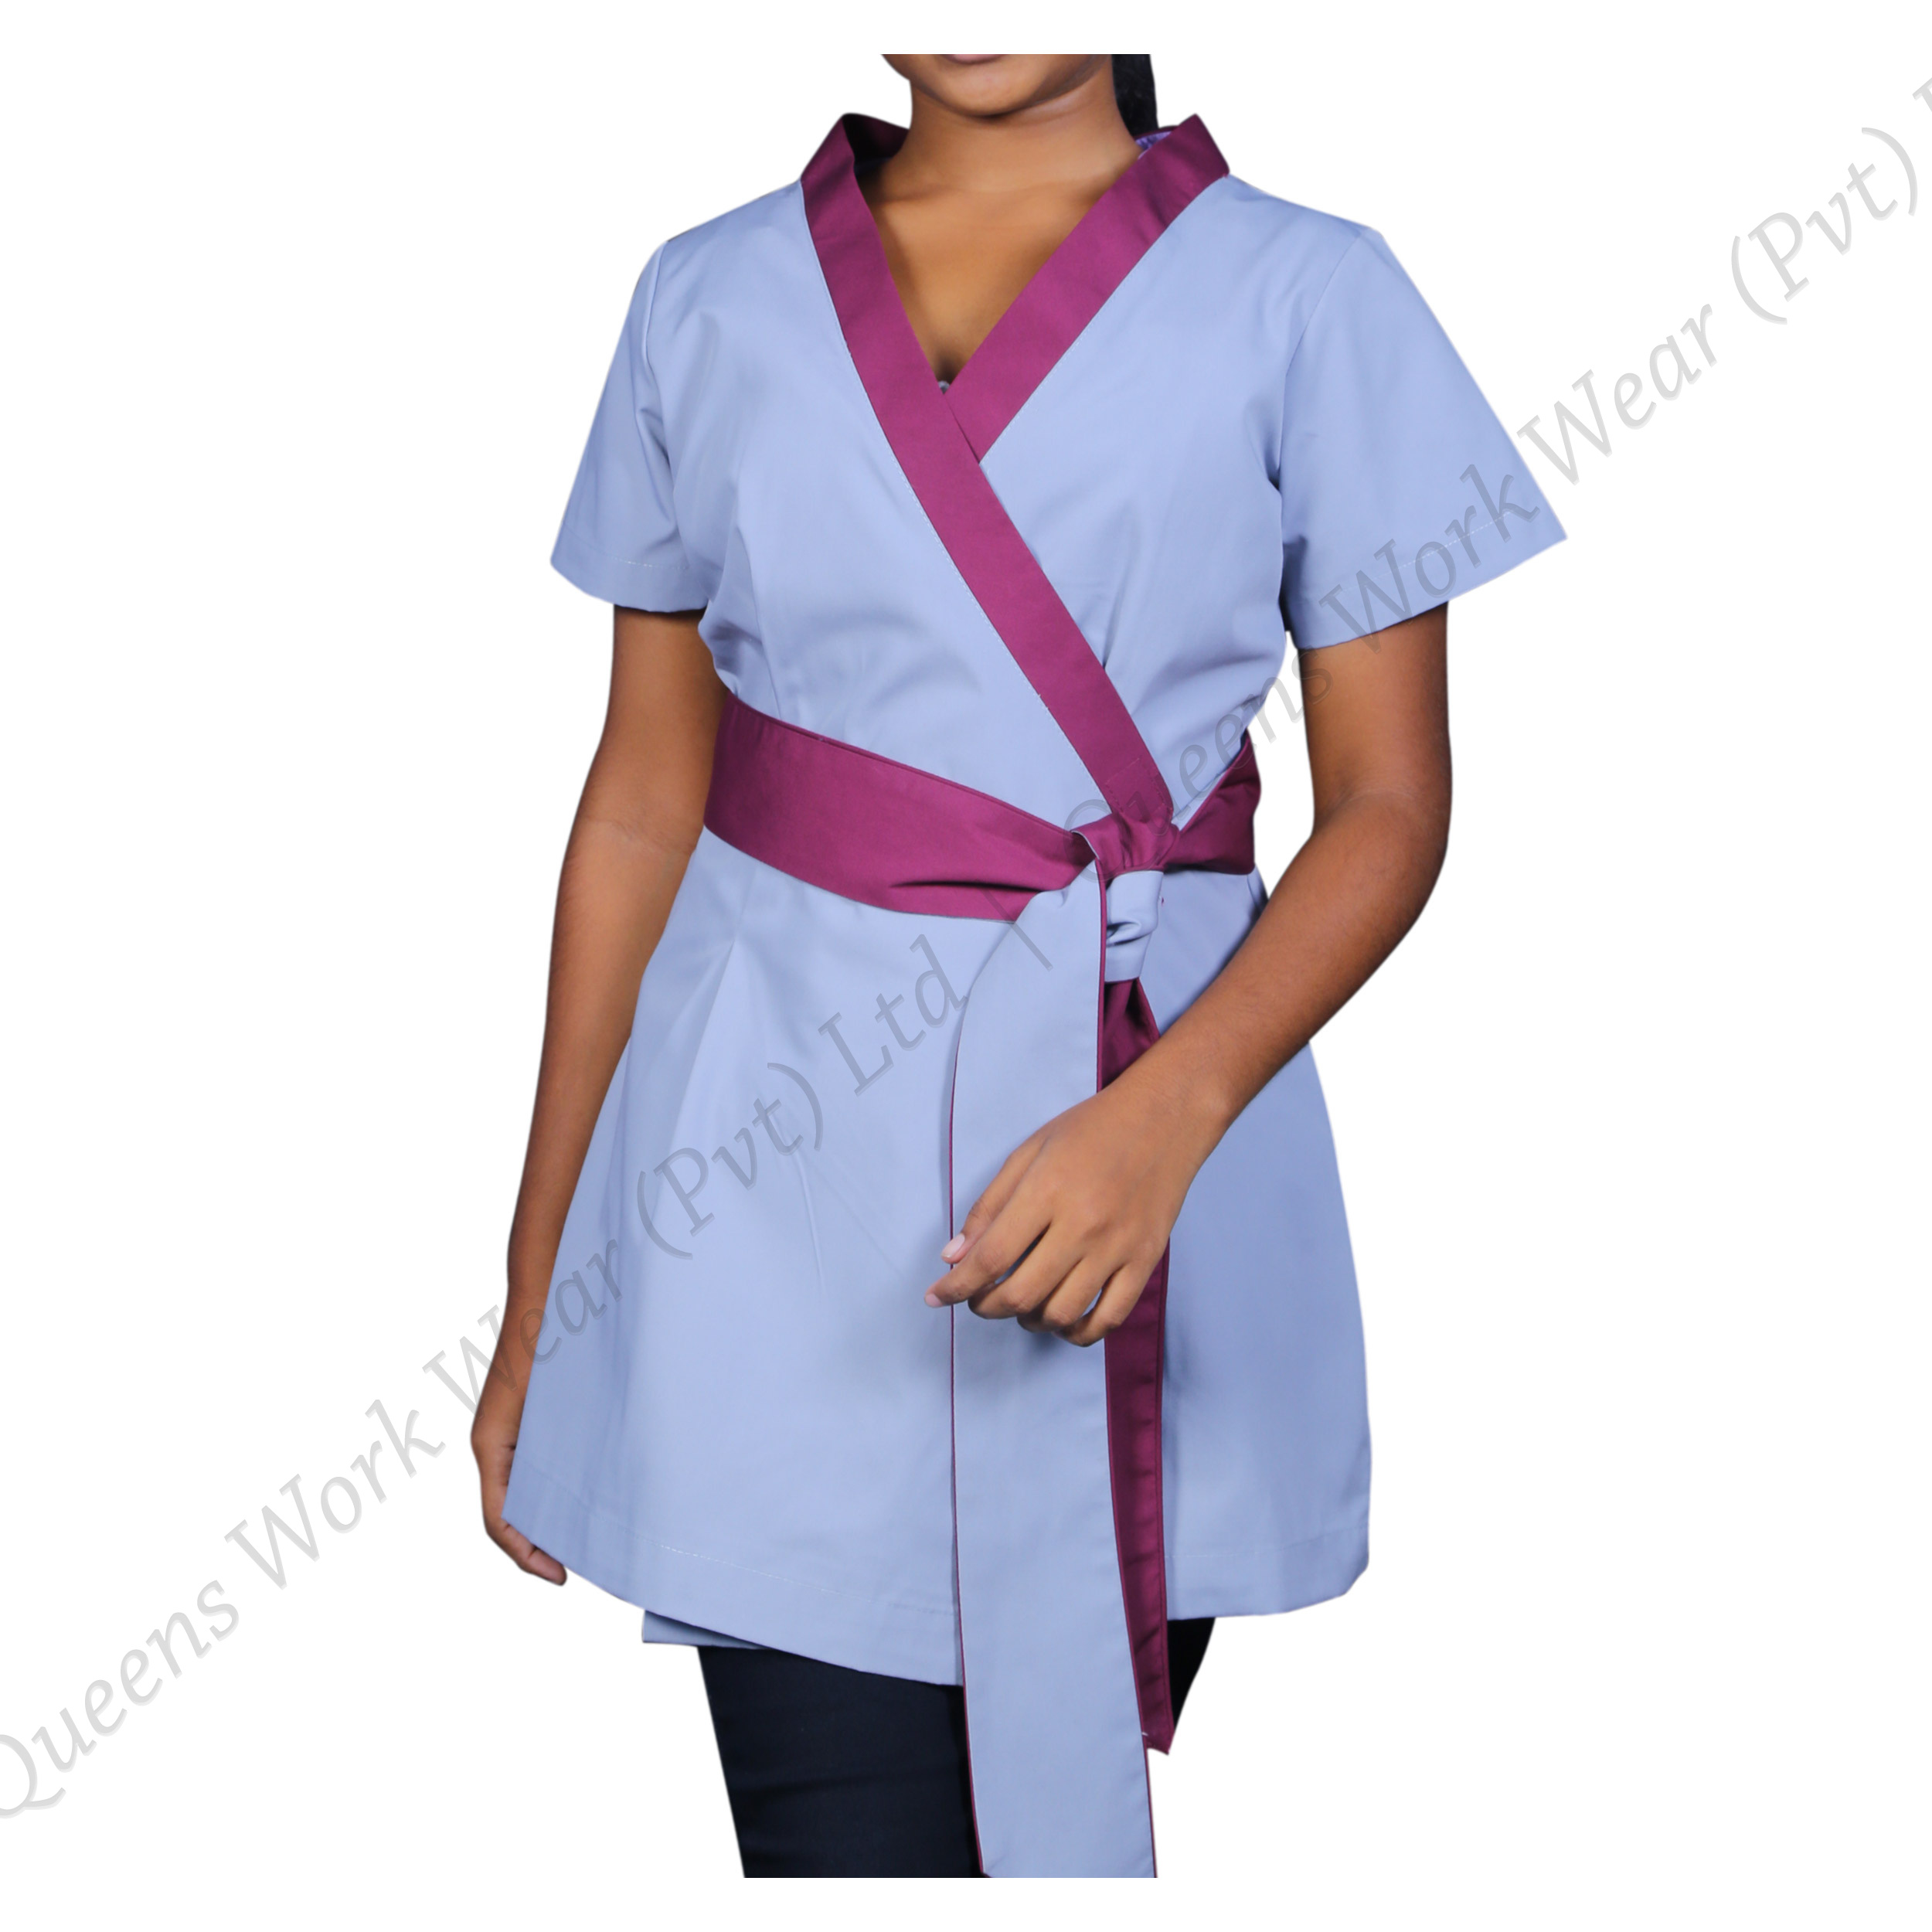 Hotel uniforms spa wellness for Hotel uniform spa